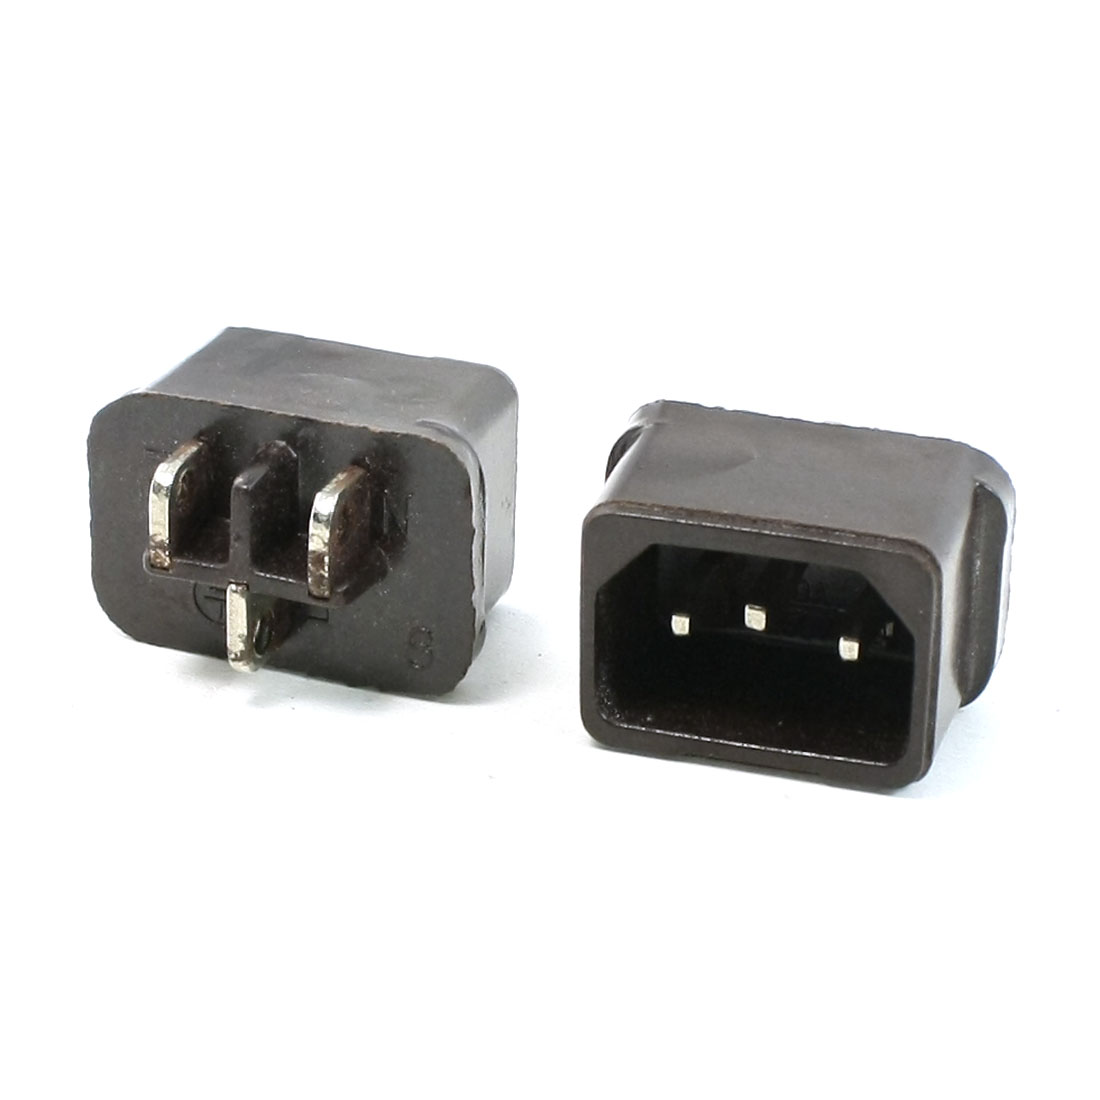 2pcs C14 Plug Power Adapter Connector for Electric Cookers 250V 10A Black